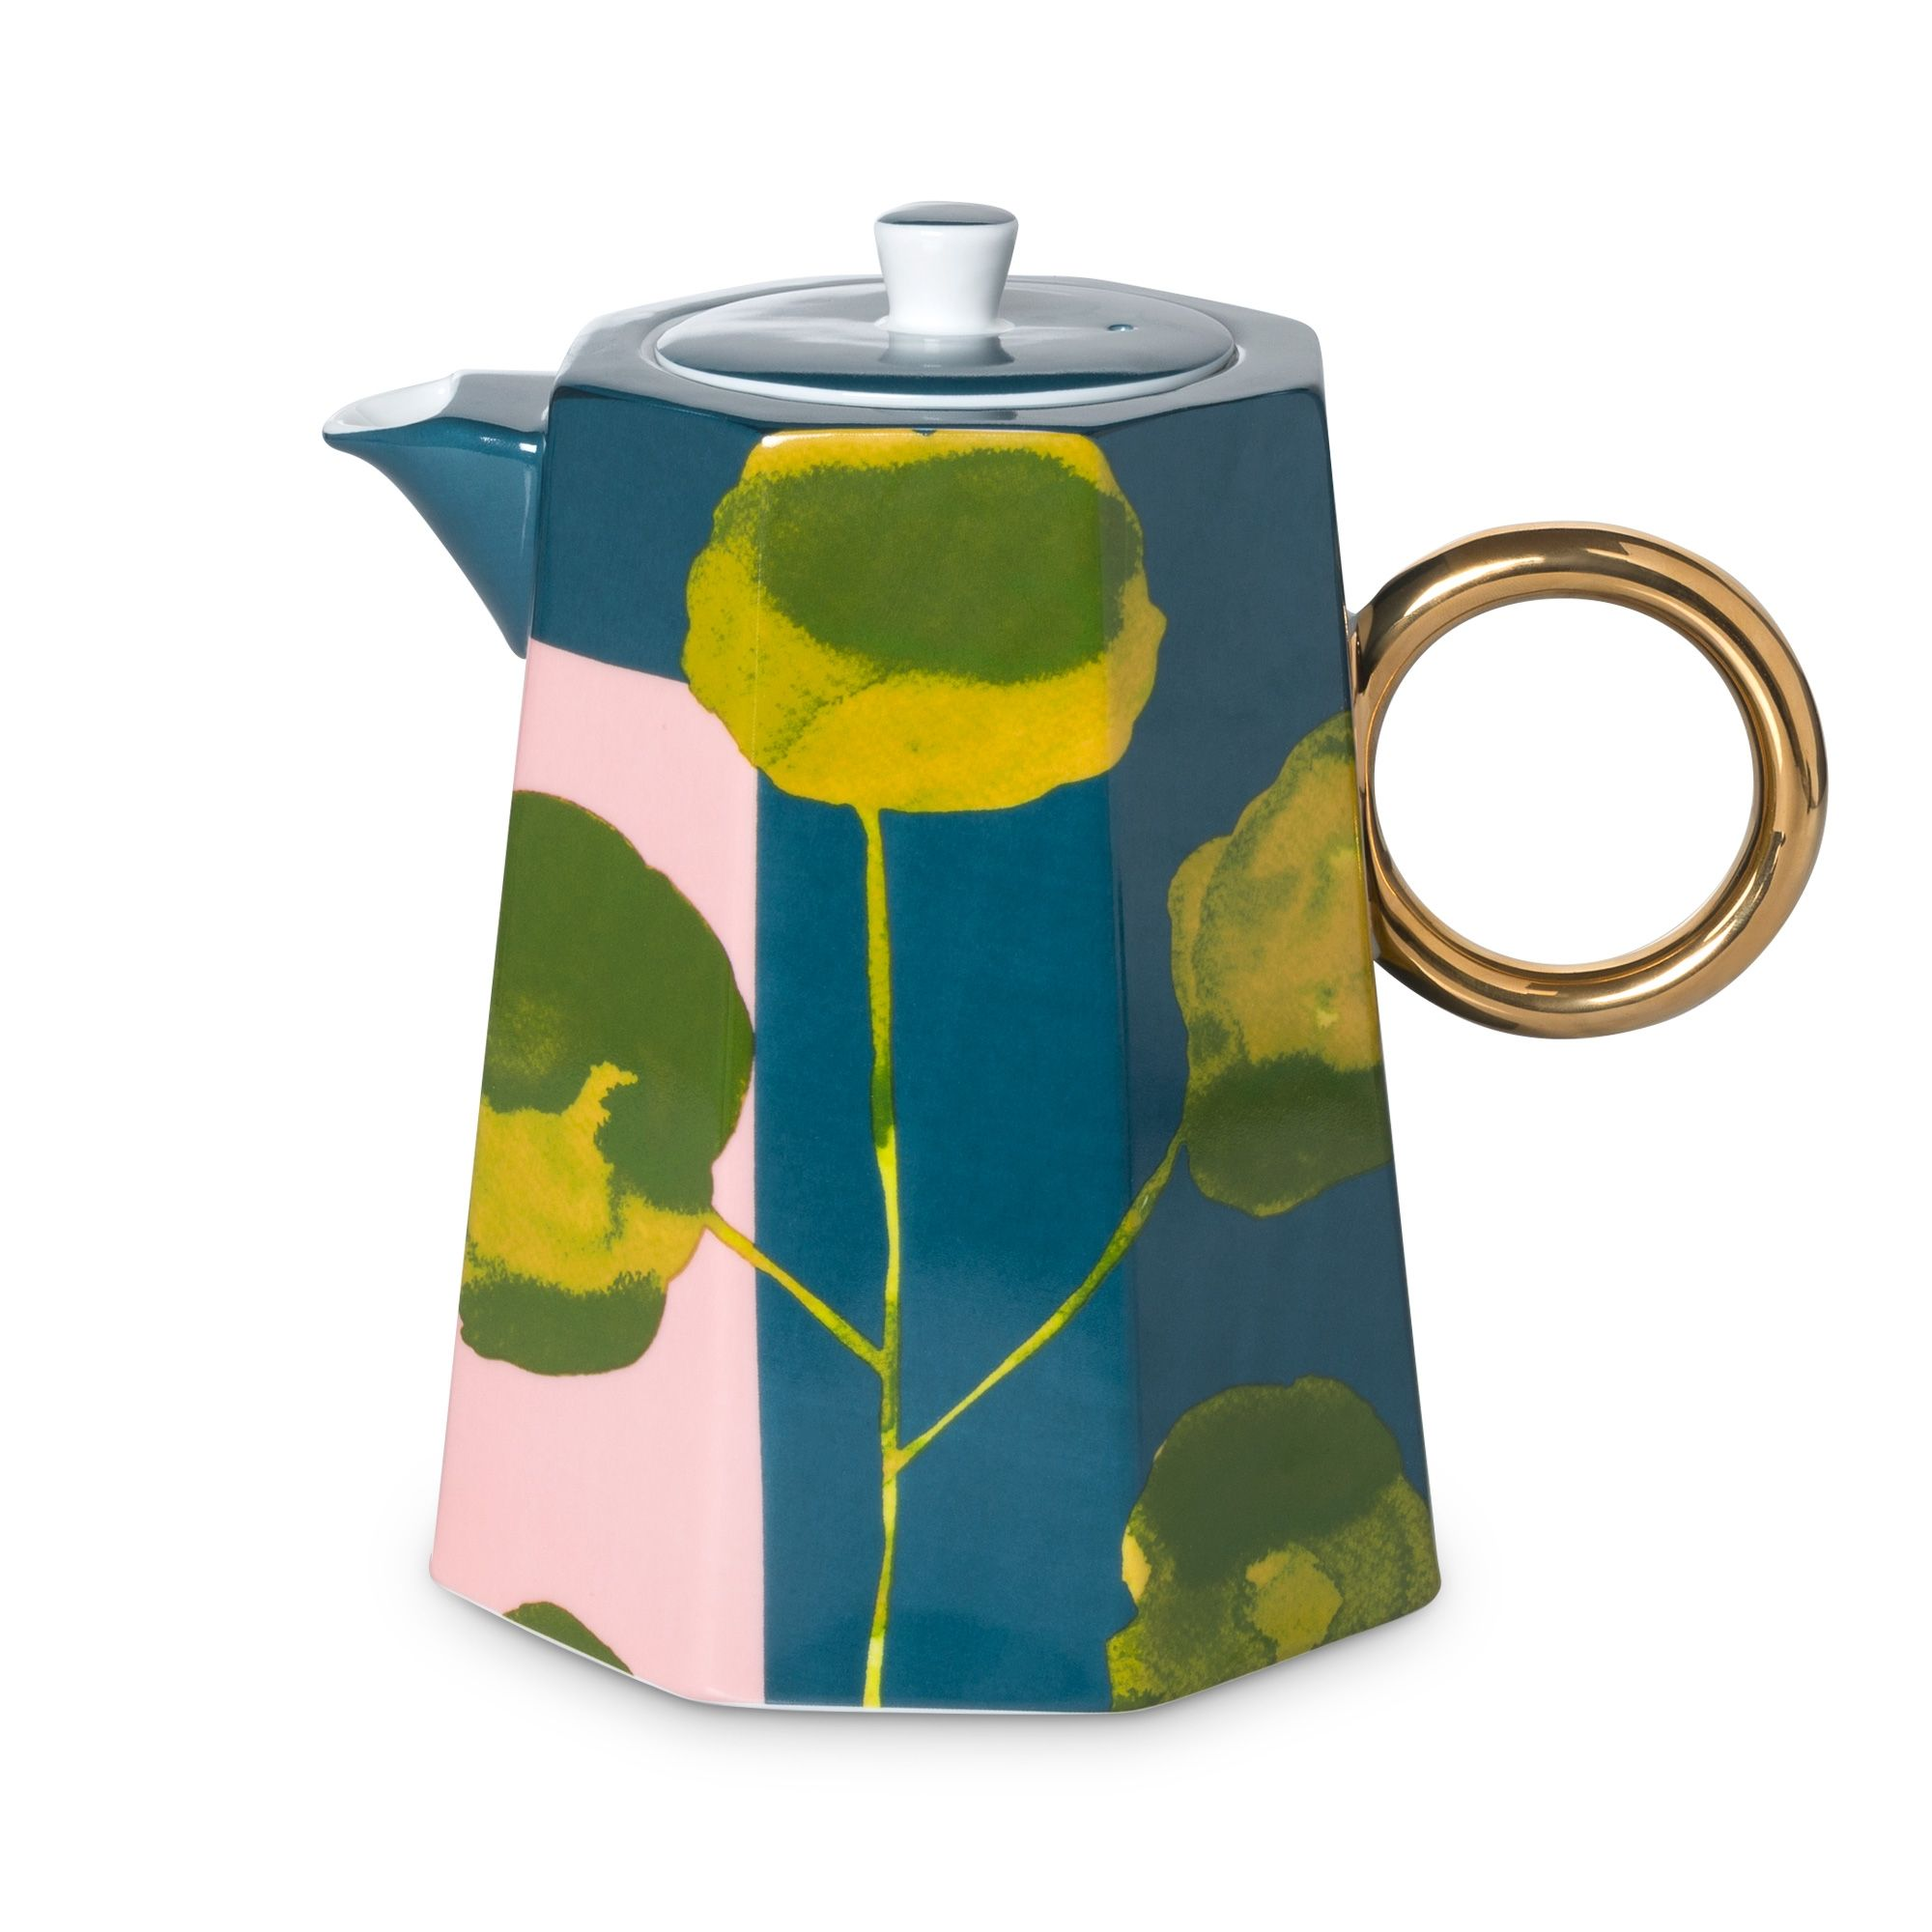 45fb3d7b0 Buy the Astratto Teapot at Oliver Bonas. Enjoy free UK standard delivery  for orders over £50.